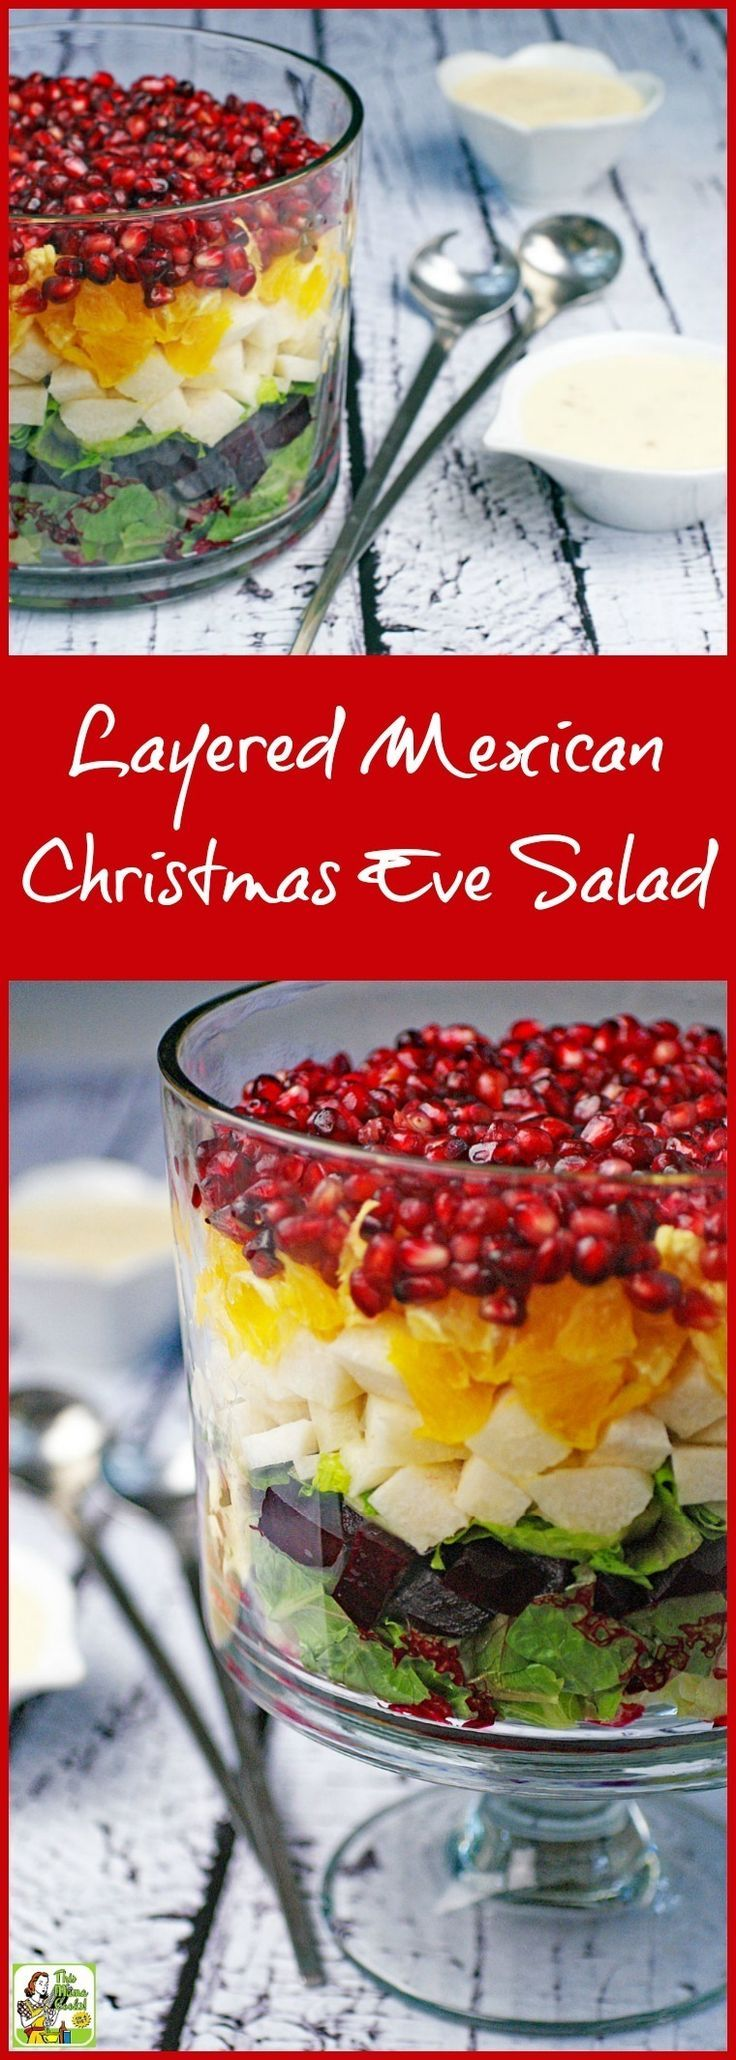 Christmas Eve Food In Spain: 17 Best Ideas About Mexican Christmas Food On Pinterest